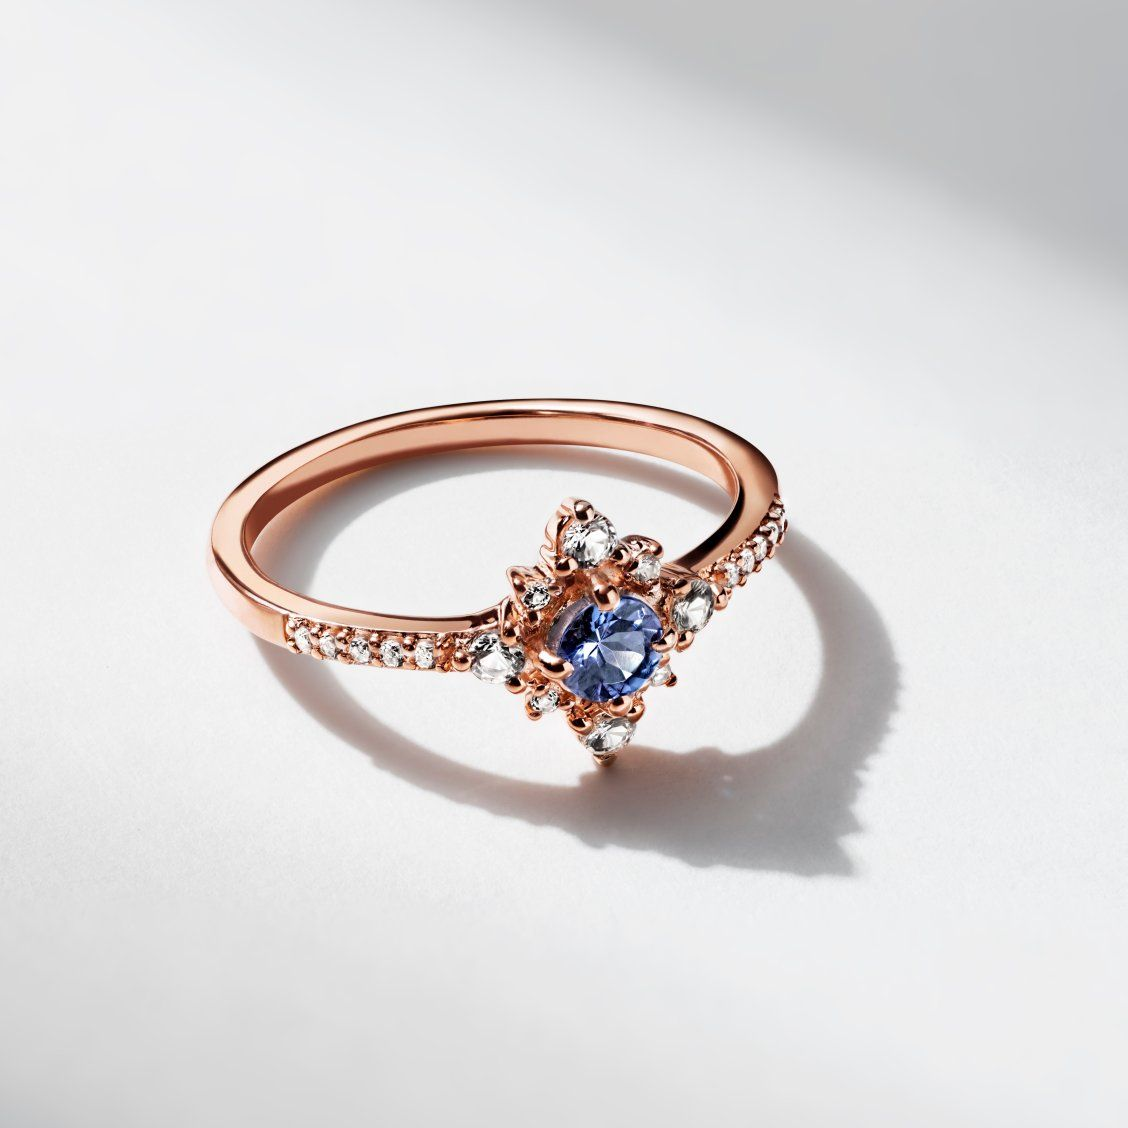 Tanzanite White Topaz Ring 10k Rose Gold Kay In 2020 Wedding Rings Vintage White Topaz Rings Wedding Rings Halo